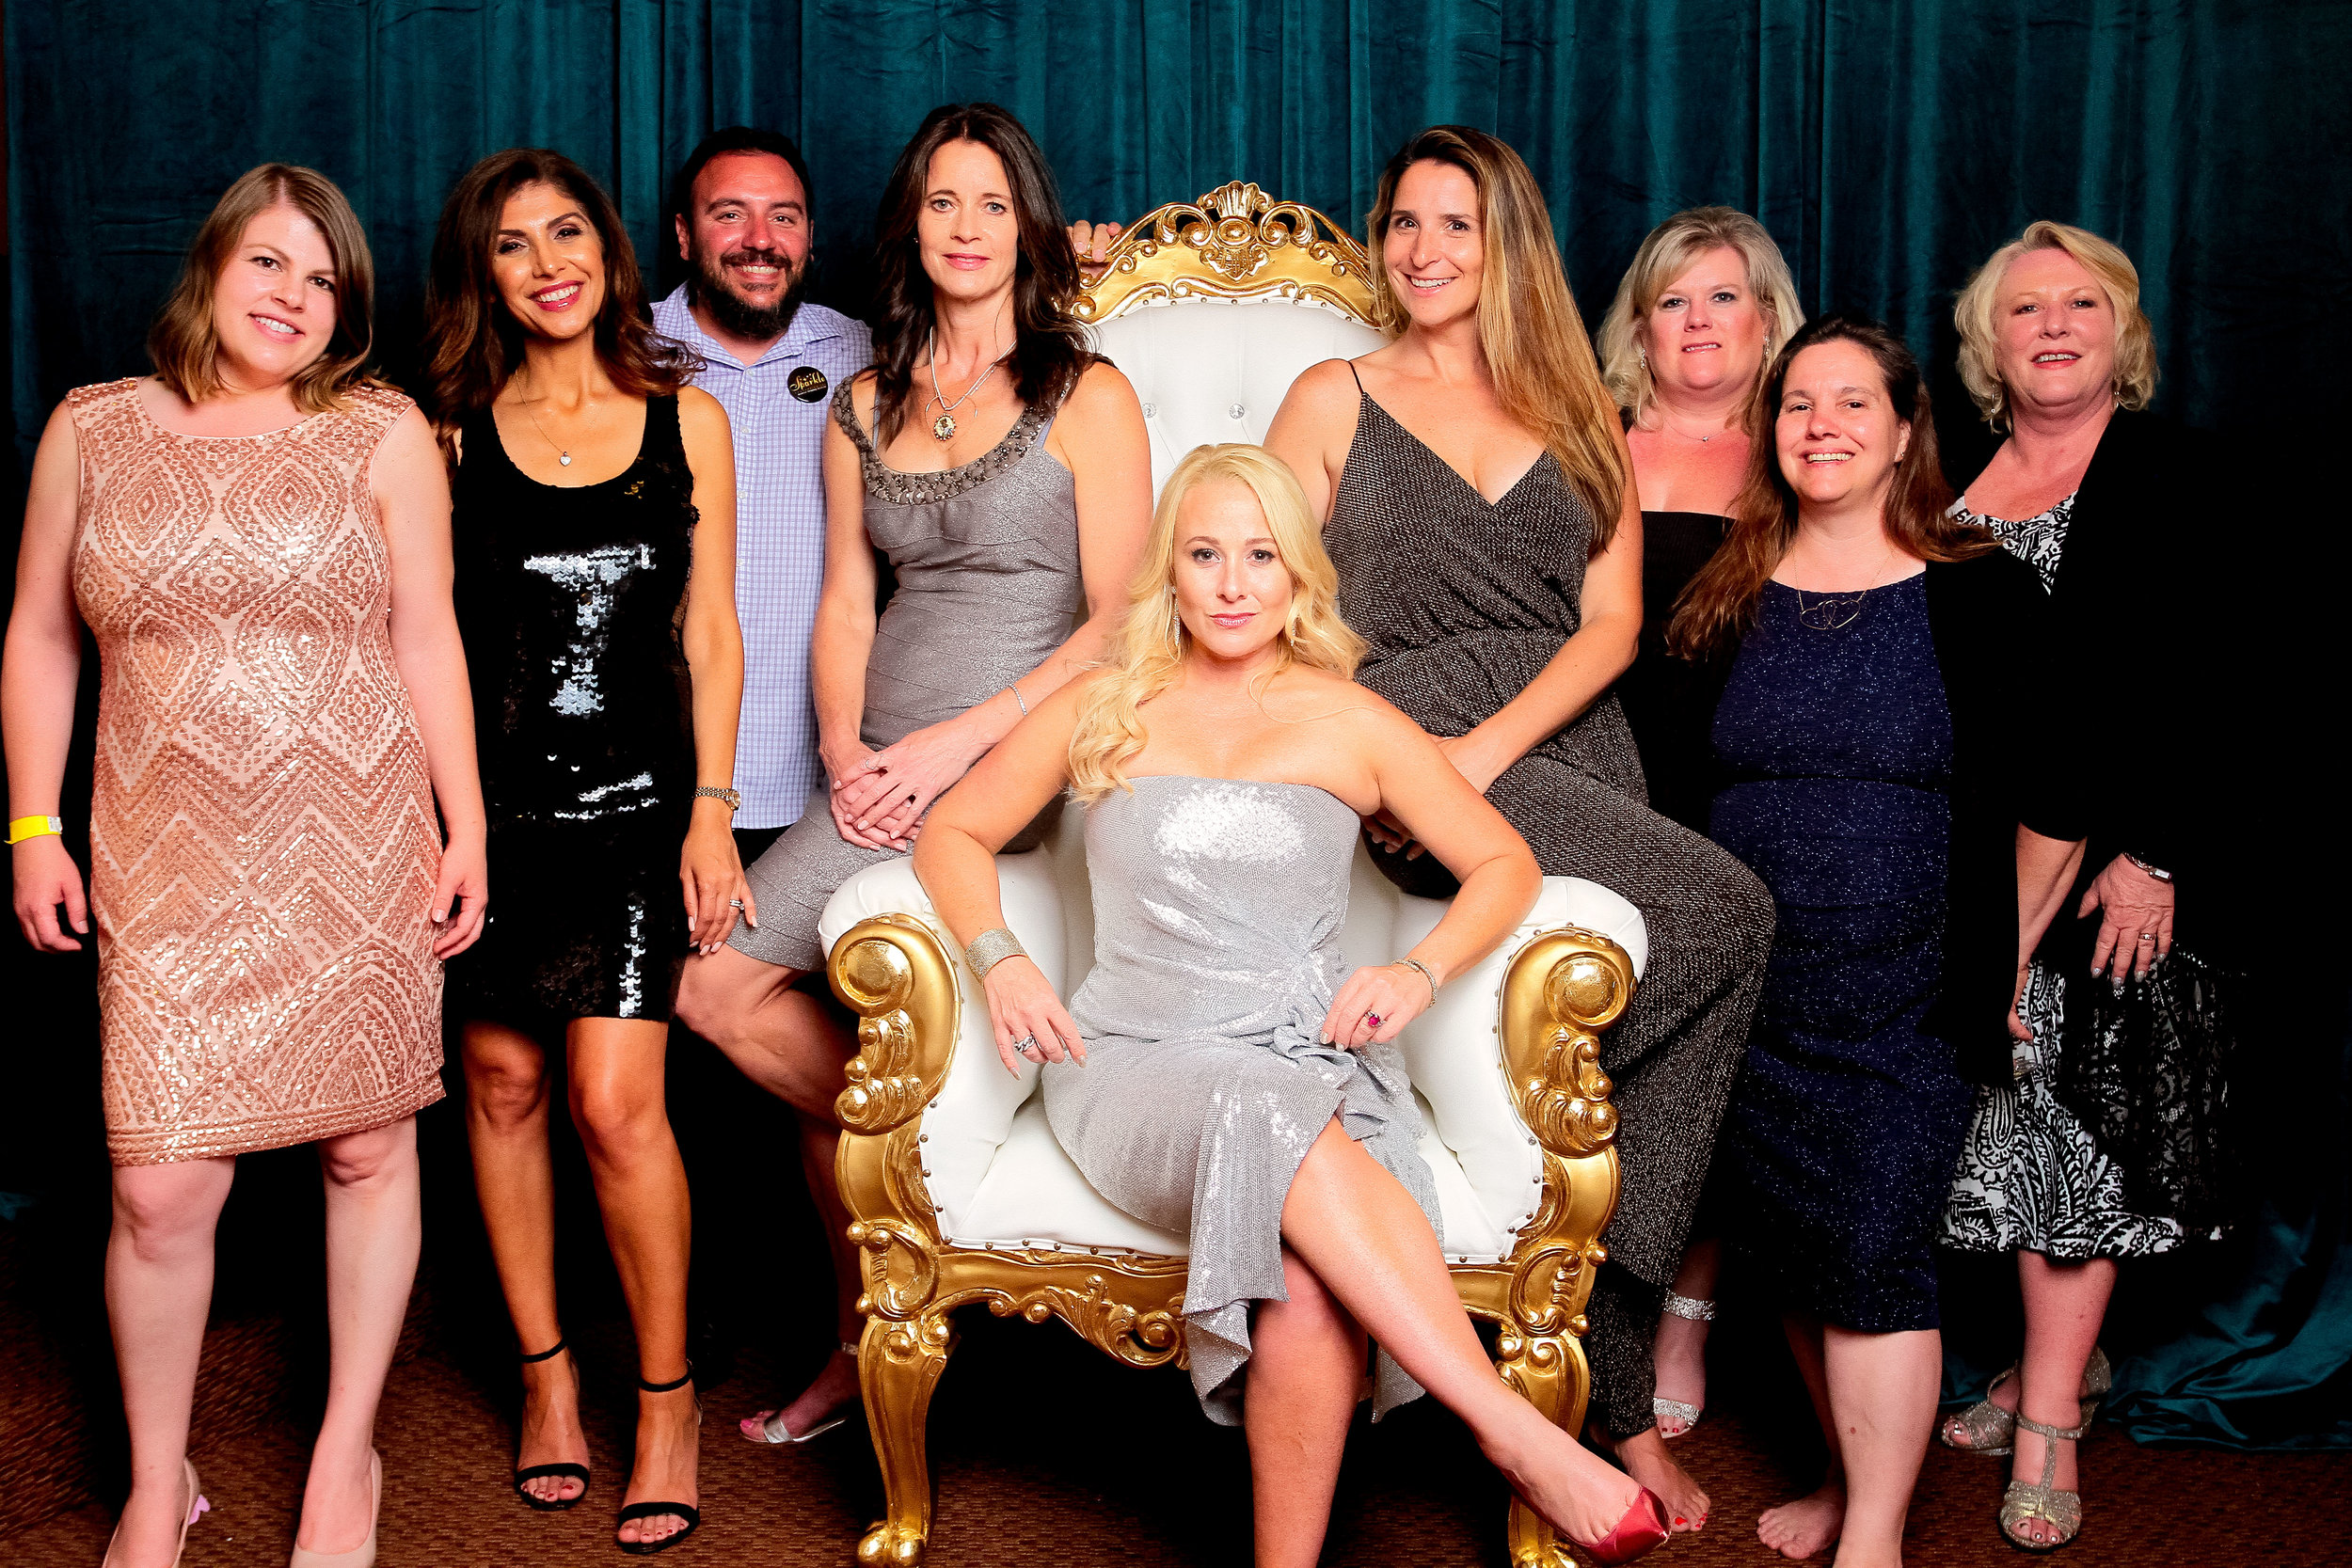 (L to R) Rachel Larsen - Director of Sparkle Sacramento, Farimah Erlandson - Director of Enrichment, Robert Santanastasio - Director of Sparkle Los Angeles, Lizi Parker Cruz - Director of Marketing, Samantha Tradelius - Executive Director, Brooke Suhler Palizi - Director of Communications, Stacey Carter Fleece - Director of Impact, Tracy Teale - Director of Finance, Barbara Luhrs -  Director of Operations